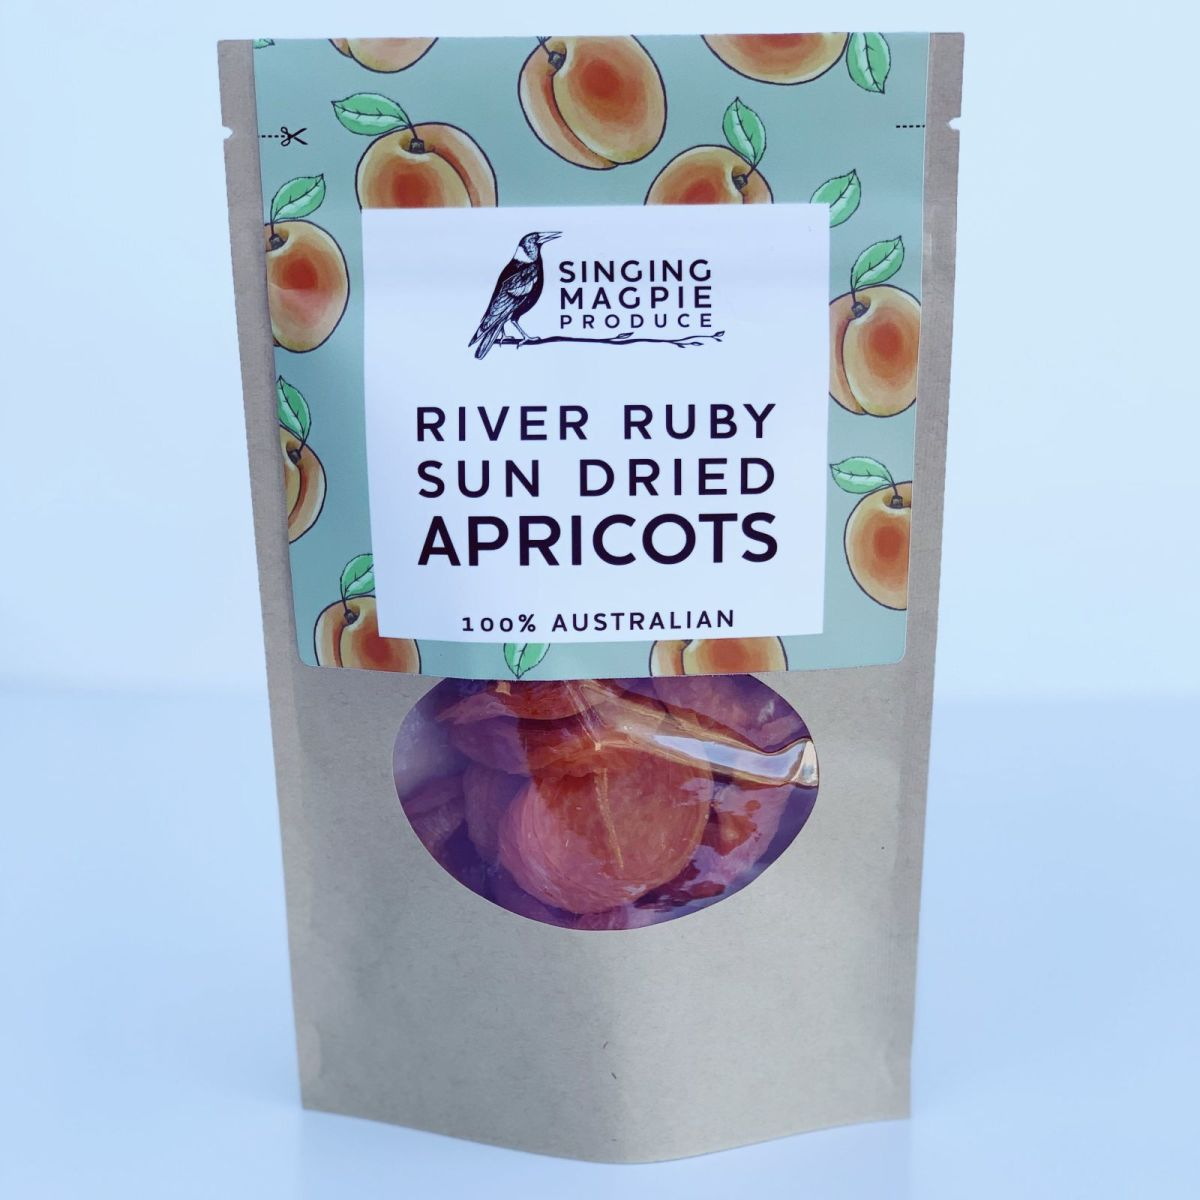 Singing Magpie Produce - River Ruby Apricots